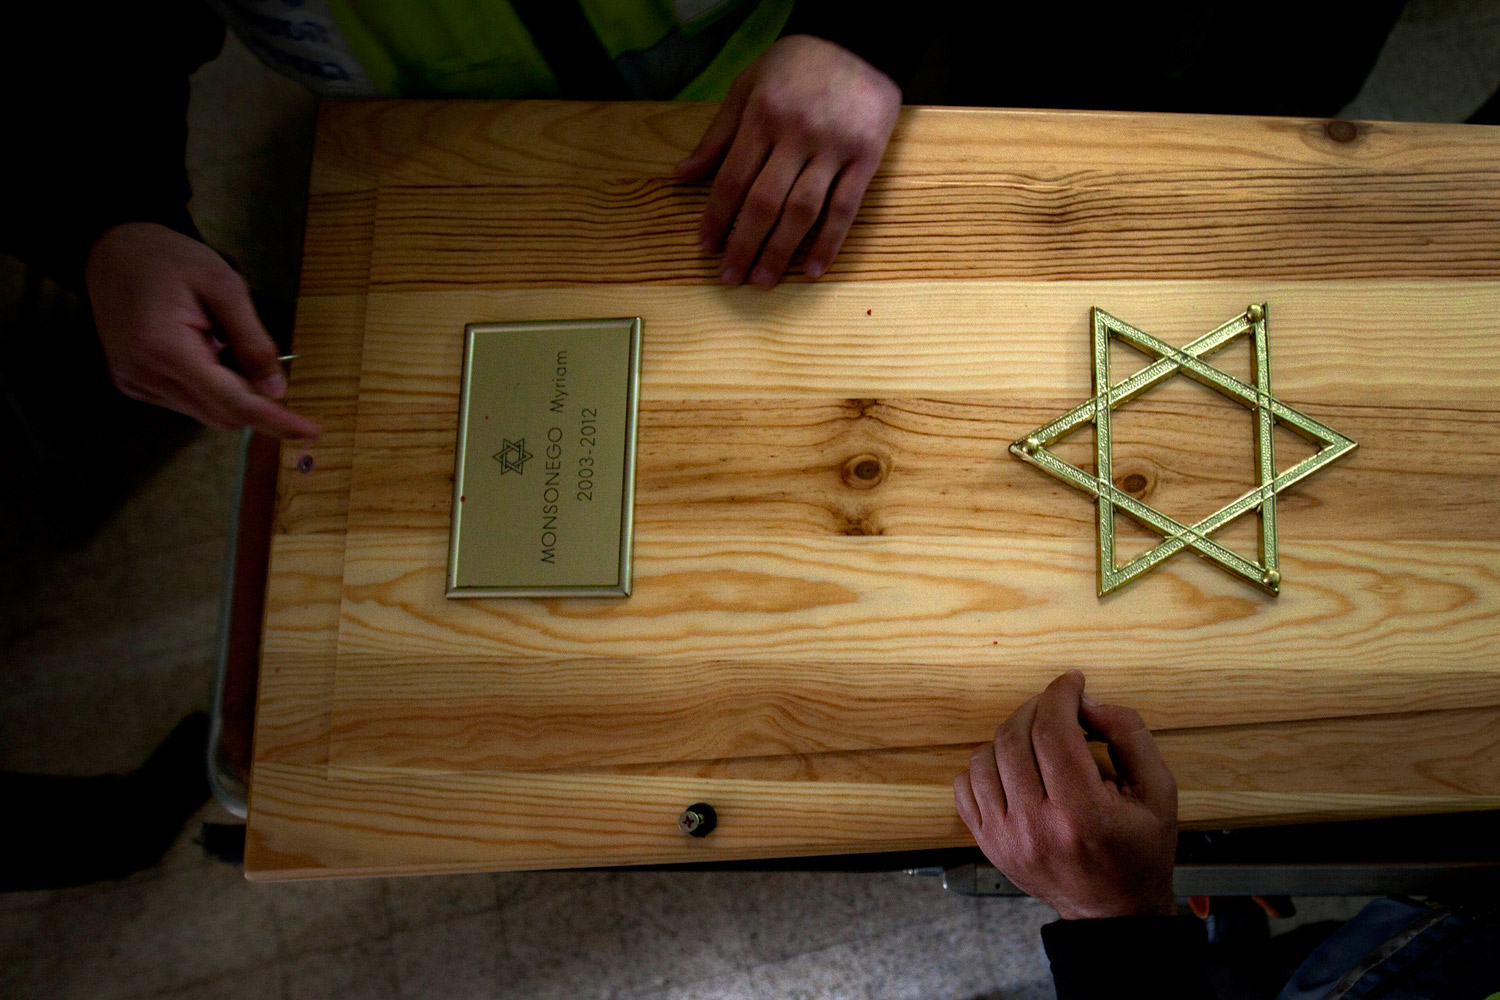 March 21, 2012. Members of ZAKA rescue and recovery open the coffins of Toulouse shooting victims as they prepare the bodies for burial after they arrived at a morgue in Jerusalem. The three children and a rabbi were gunned down the deadliest school shooting France has ever known and the bloodiest attack on Jewish targets in decades.